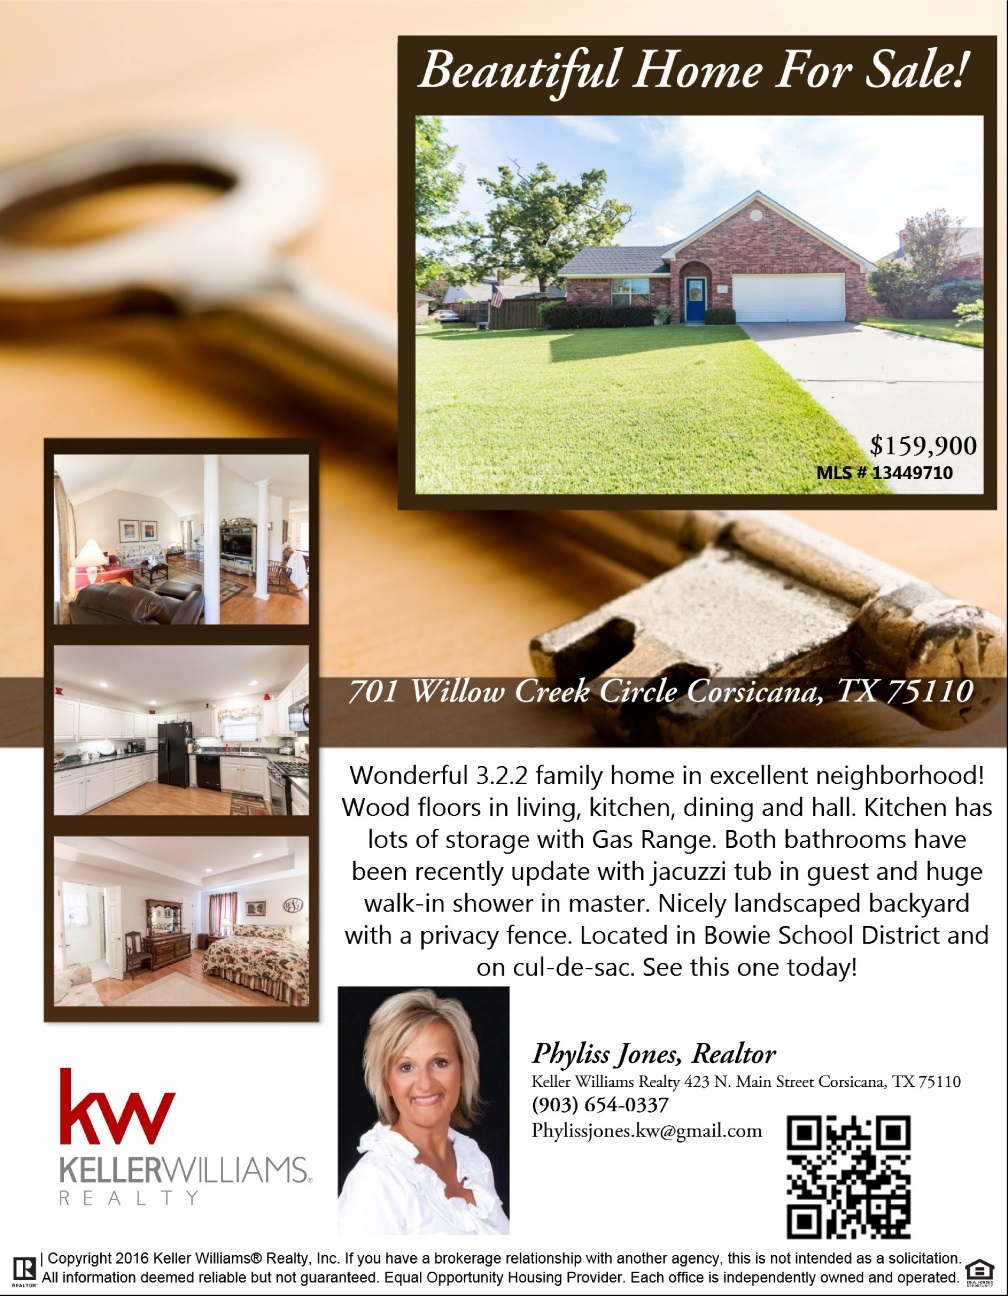 Wonderful Home in Corsicana! Call now to know more.  Phyliss Jones (903) 654-0337.